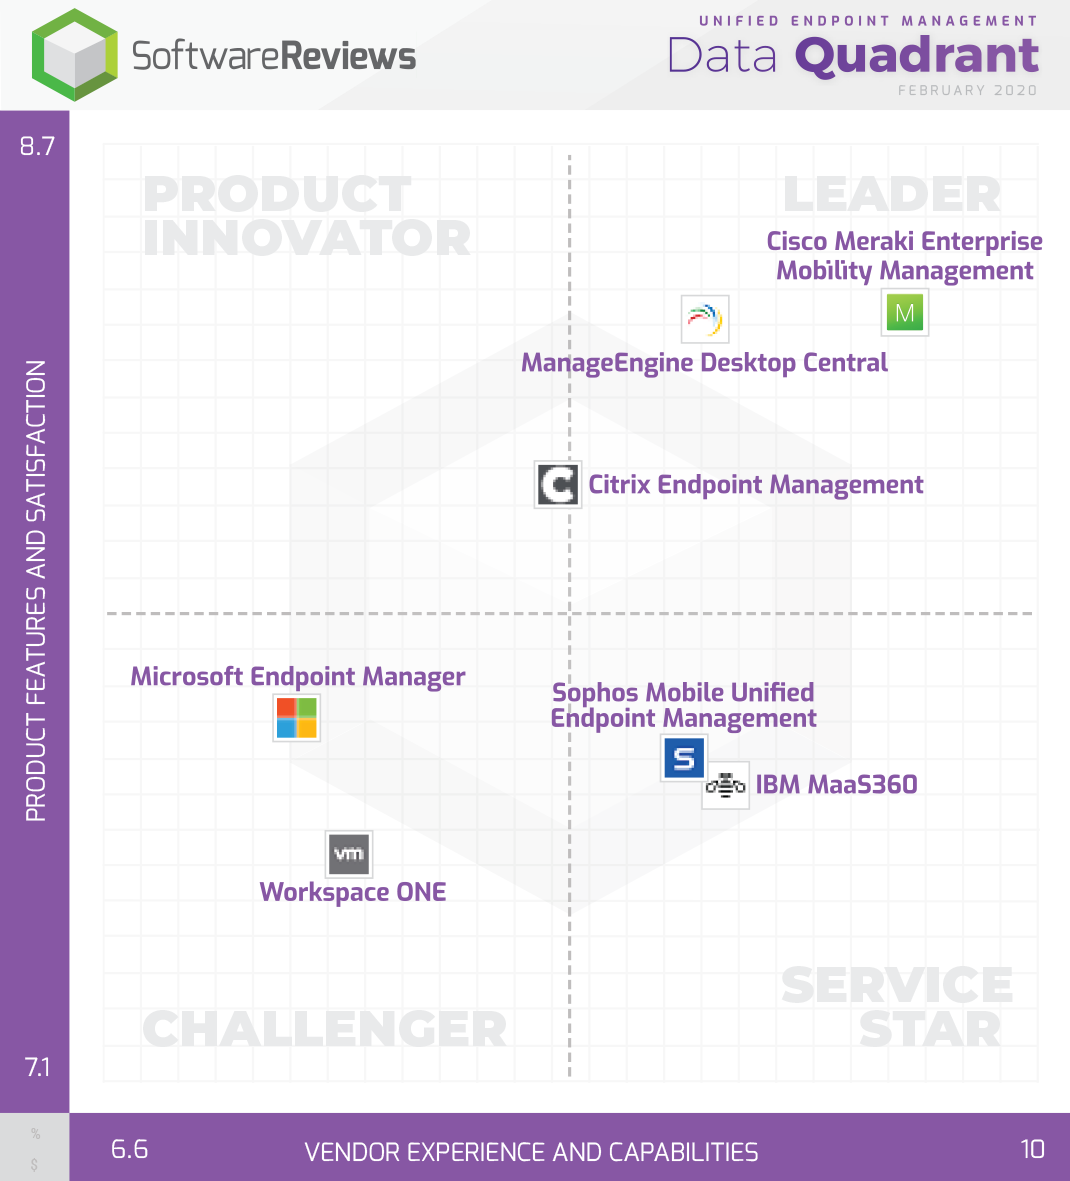 Unified Endpoint Management Data Quadrant